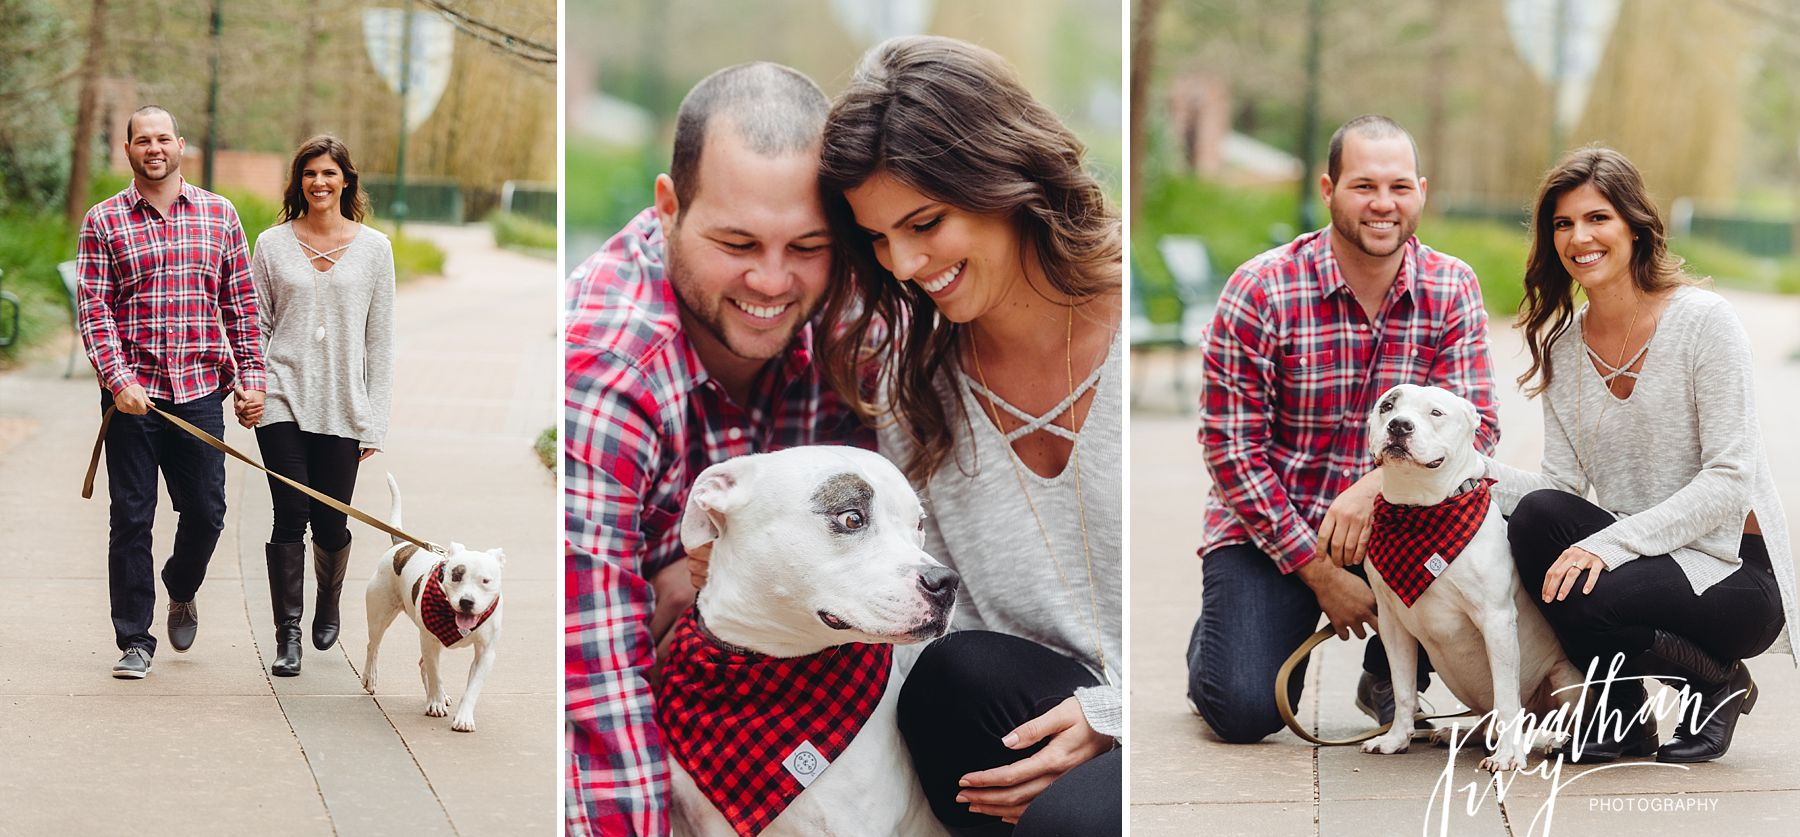 The Woodlands Waterway Engagement Photos